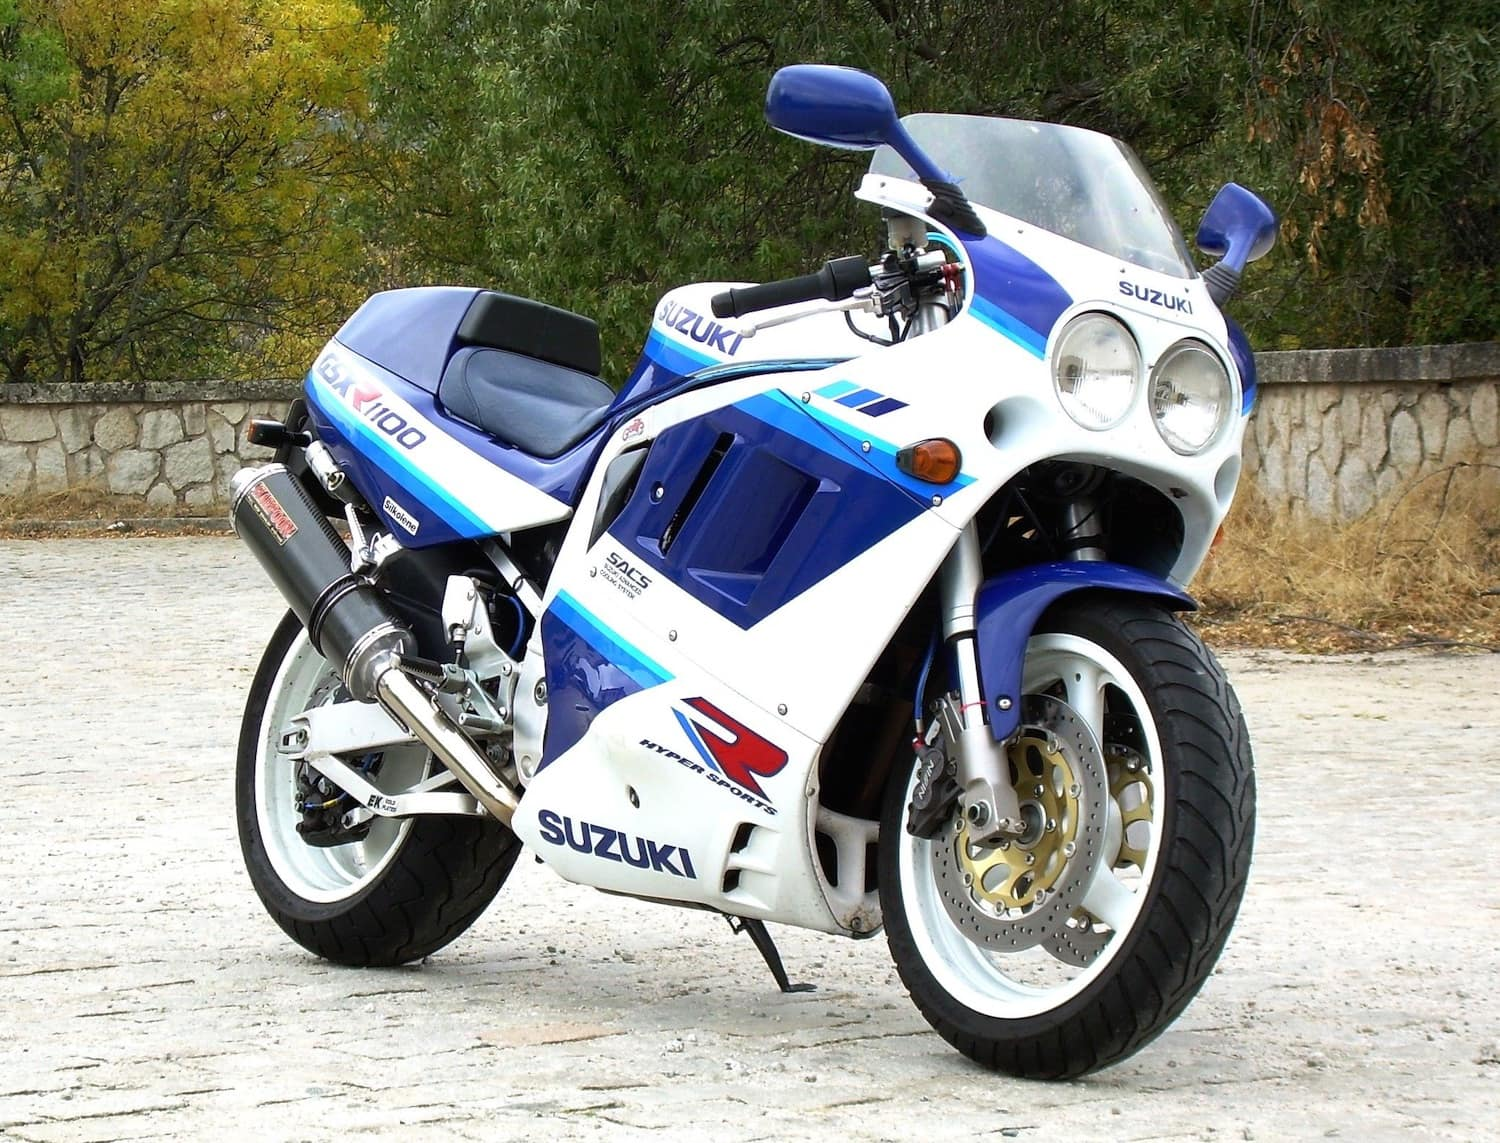 GSX-R 1100, a classic motorcycle, unimpacted by style effect of Ducati motorcycles